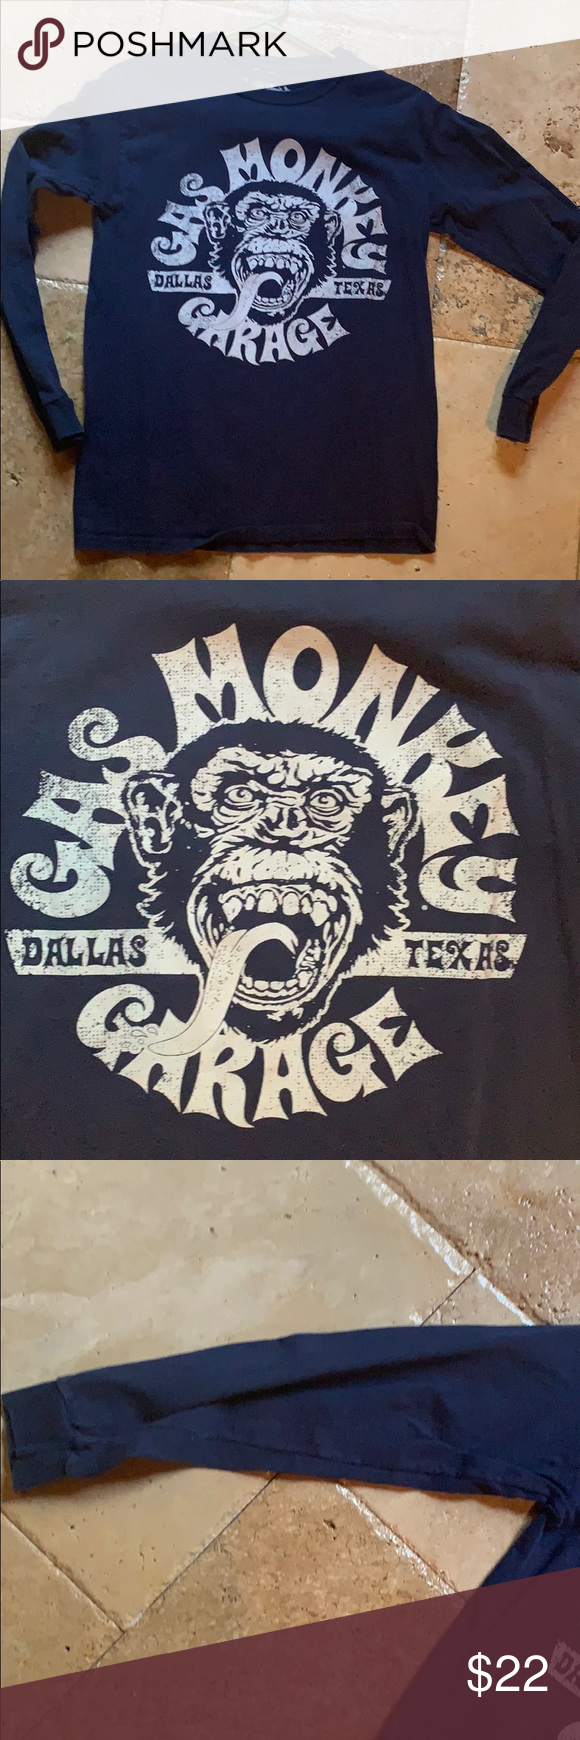 Gas monkey garage T-shirt Men's longsleeve T-shirt from the television show gas monkey garage. Worn only once or twice Gas Monkey Shirts Tees - Long Sleeve #gasmonkeygarage Gas monkey garage T-shirt Men's longsleeve T-shirt from the television show gas monkey garage. Worn only once or twice Gas Monkey Shirts Tees - Long Sleeve #gasmonkeygarage Gas monkey garage T-shirt Men's longsleeve T-shirt from the television show gas monkey garage. Worn only once or twice Gas Monkey Shirts Tees - Long #gasmonkeygarage